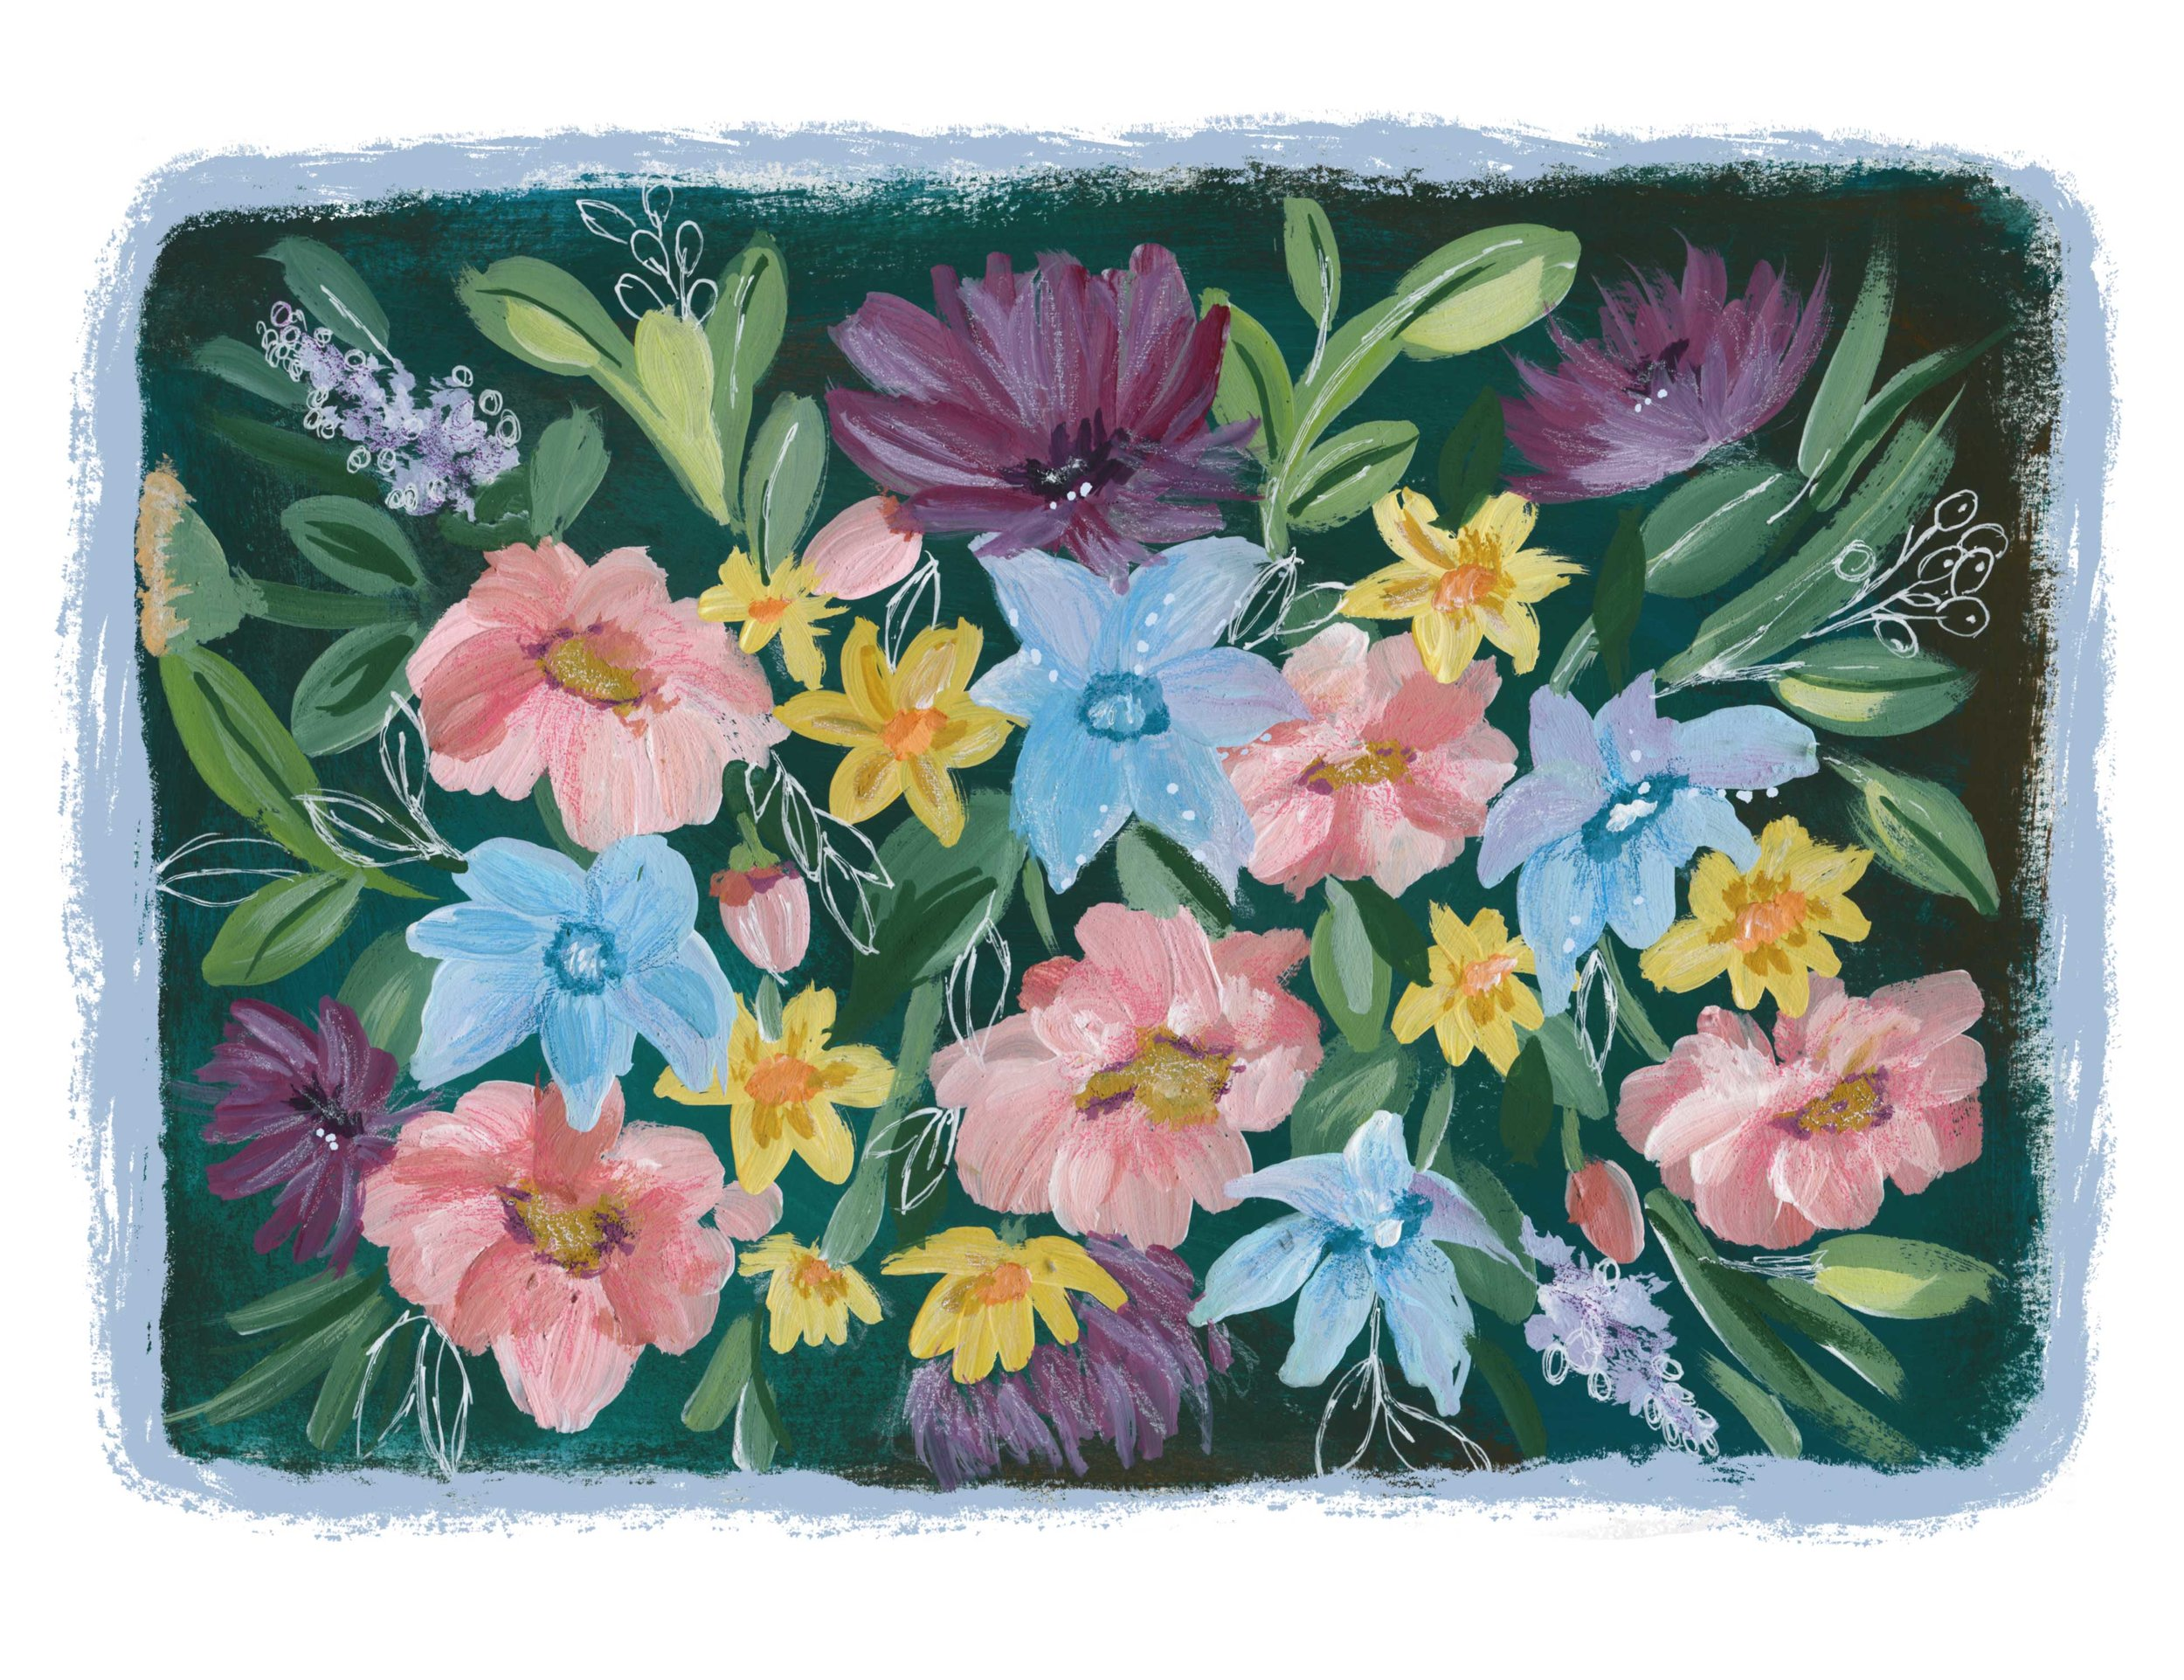 Bunched_Flowers_On_Dark_Teal.jpg